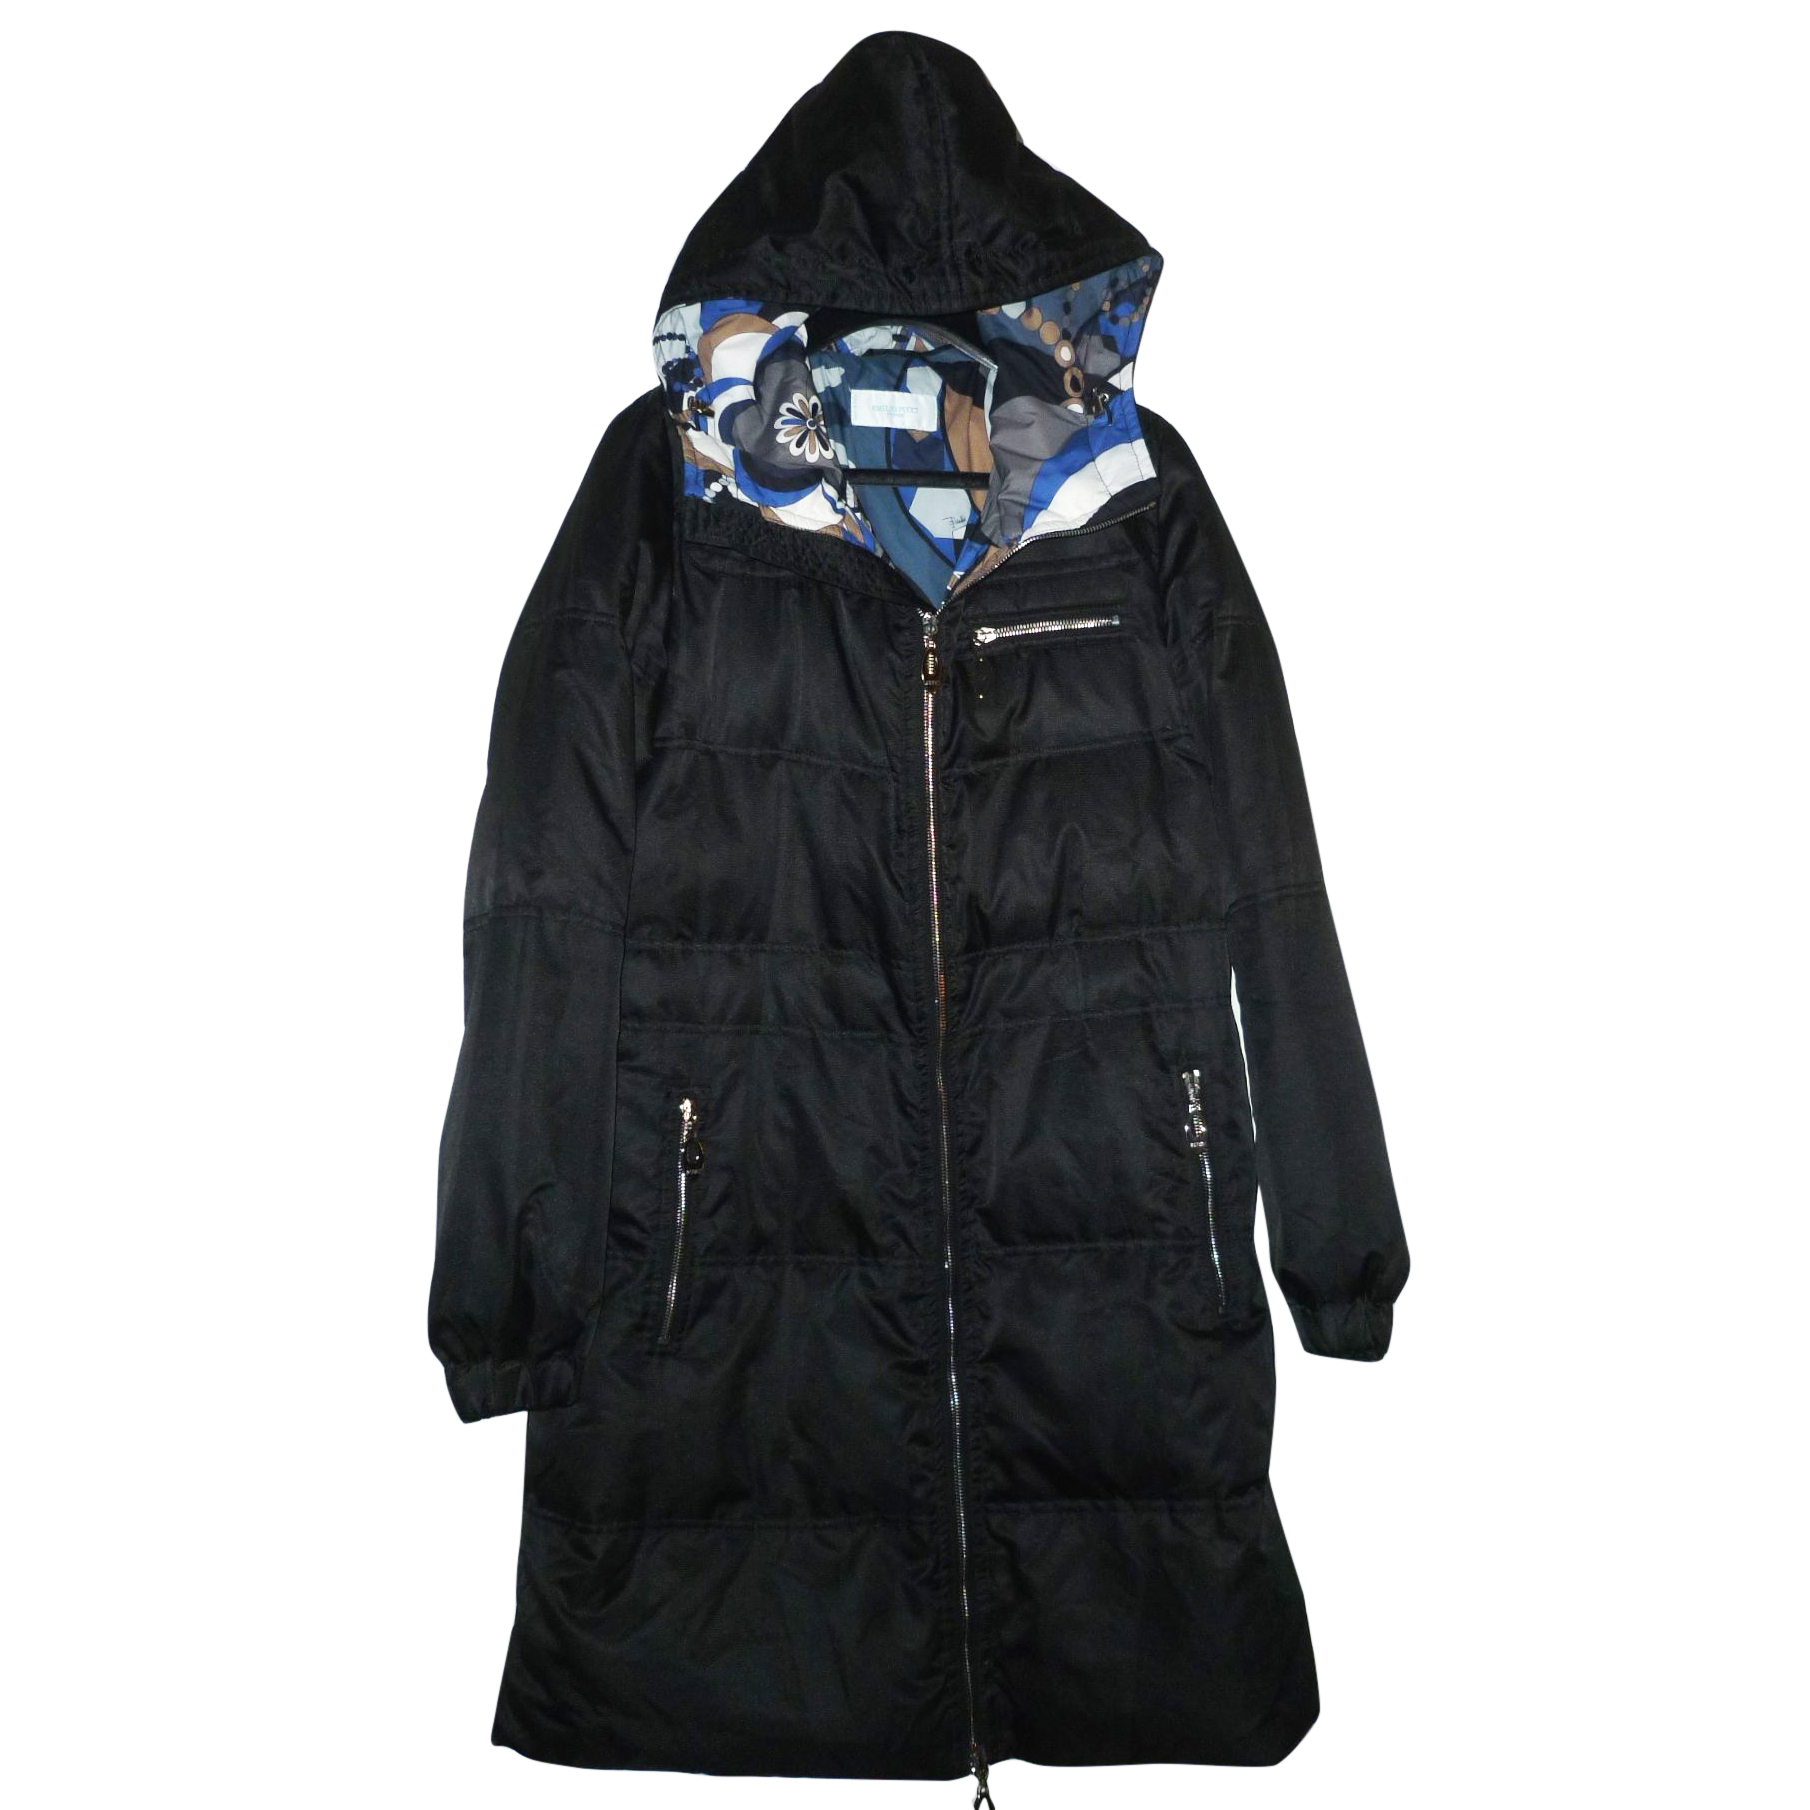 Emilio Pucci Goose Down Jacket Coat